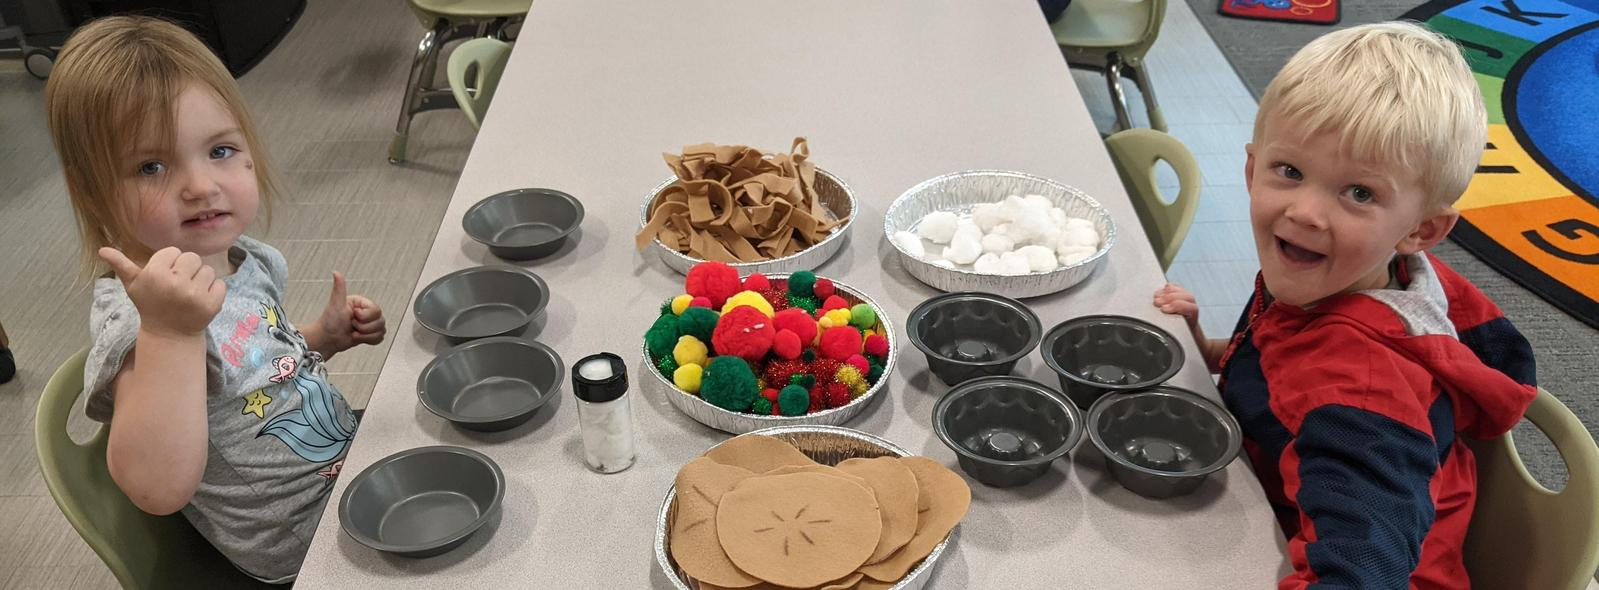 students making a pie with fabric pieces